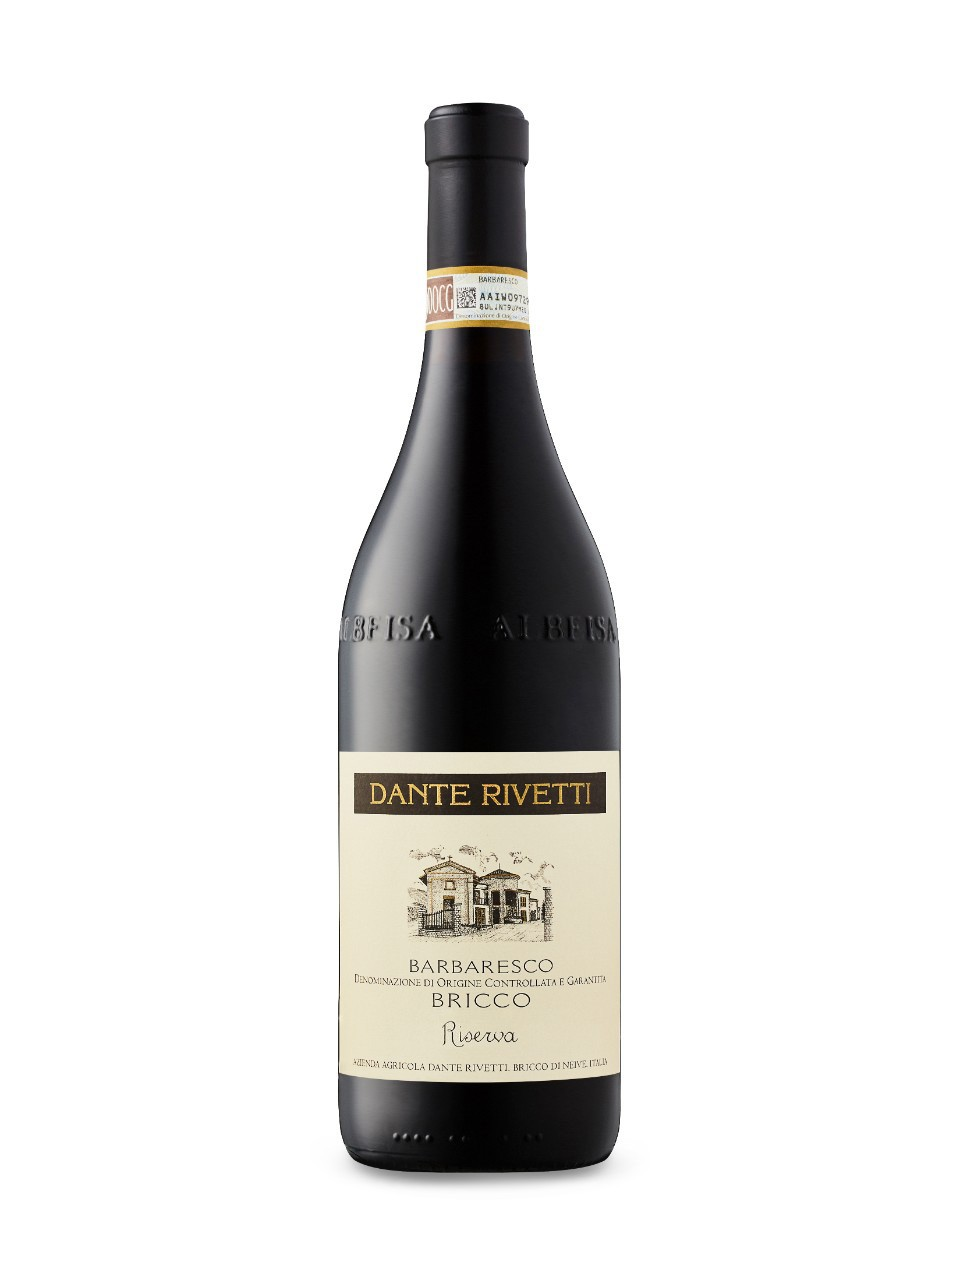 Image for Dante Rivetti Barbaresco Bricco De Neueis Riserva 2000 from LCBO